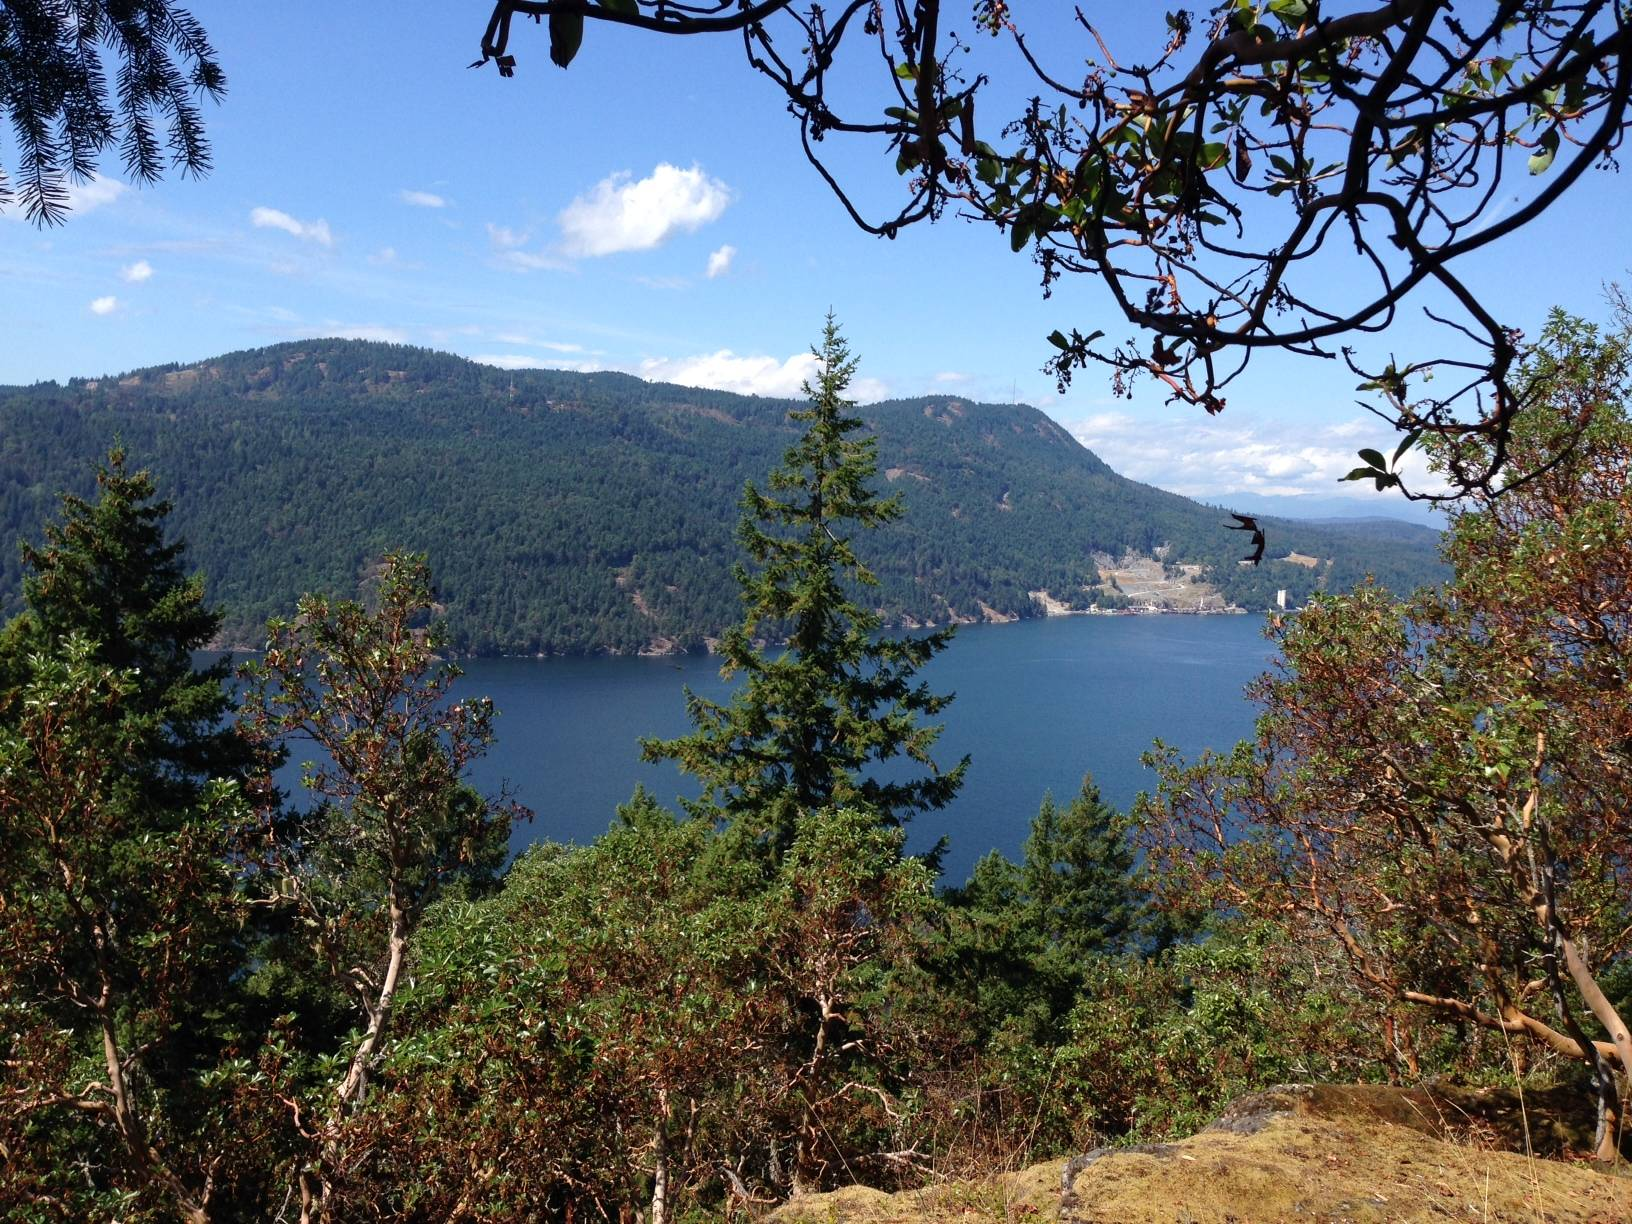 Looking at Bamberton on Malahat